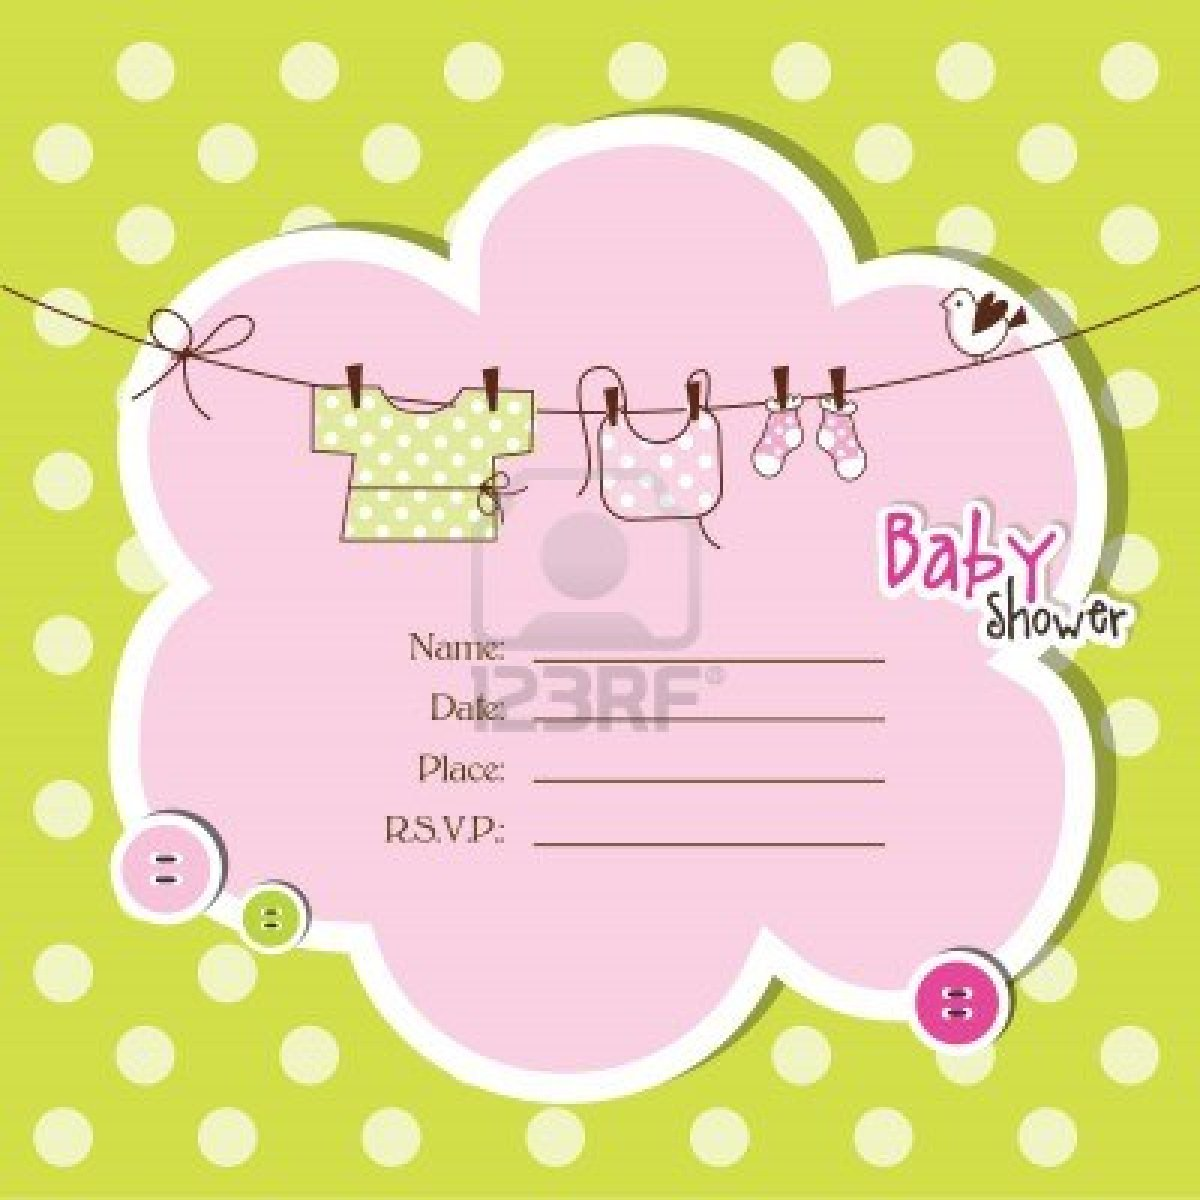 Baby shower invitation clipart 8 » Clipart Station.